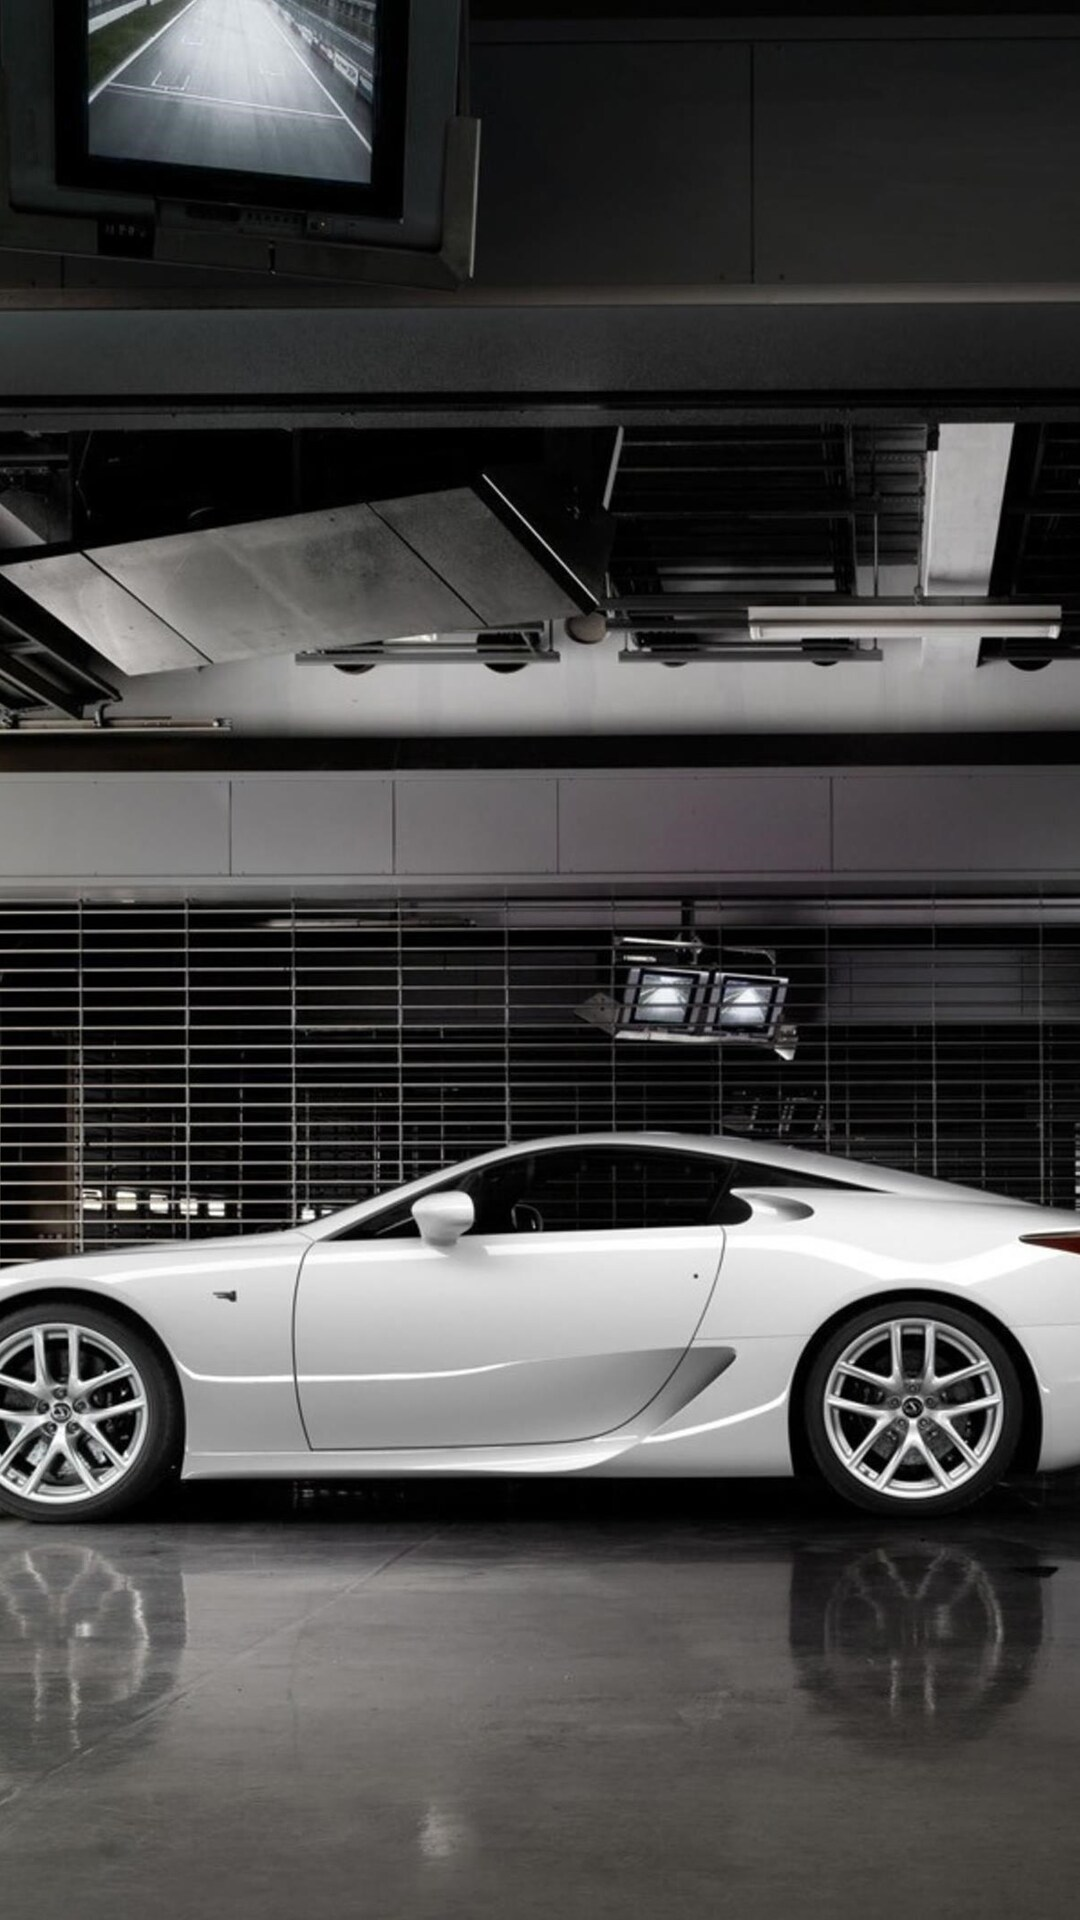 lexus lfa iphone wallpaper. lexuslfajpg lexus lfa iphone wallpaper